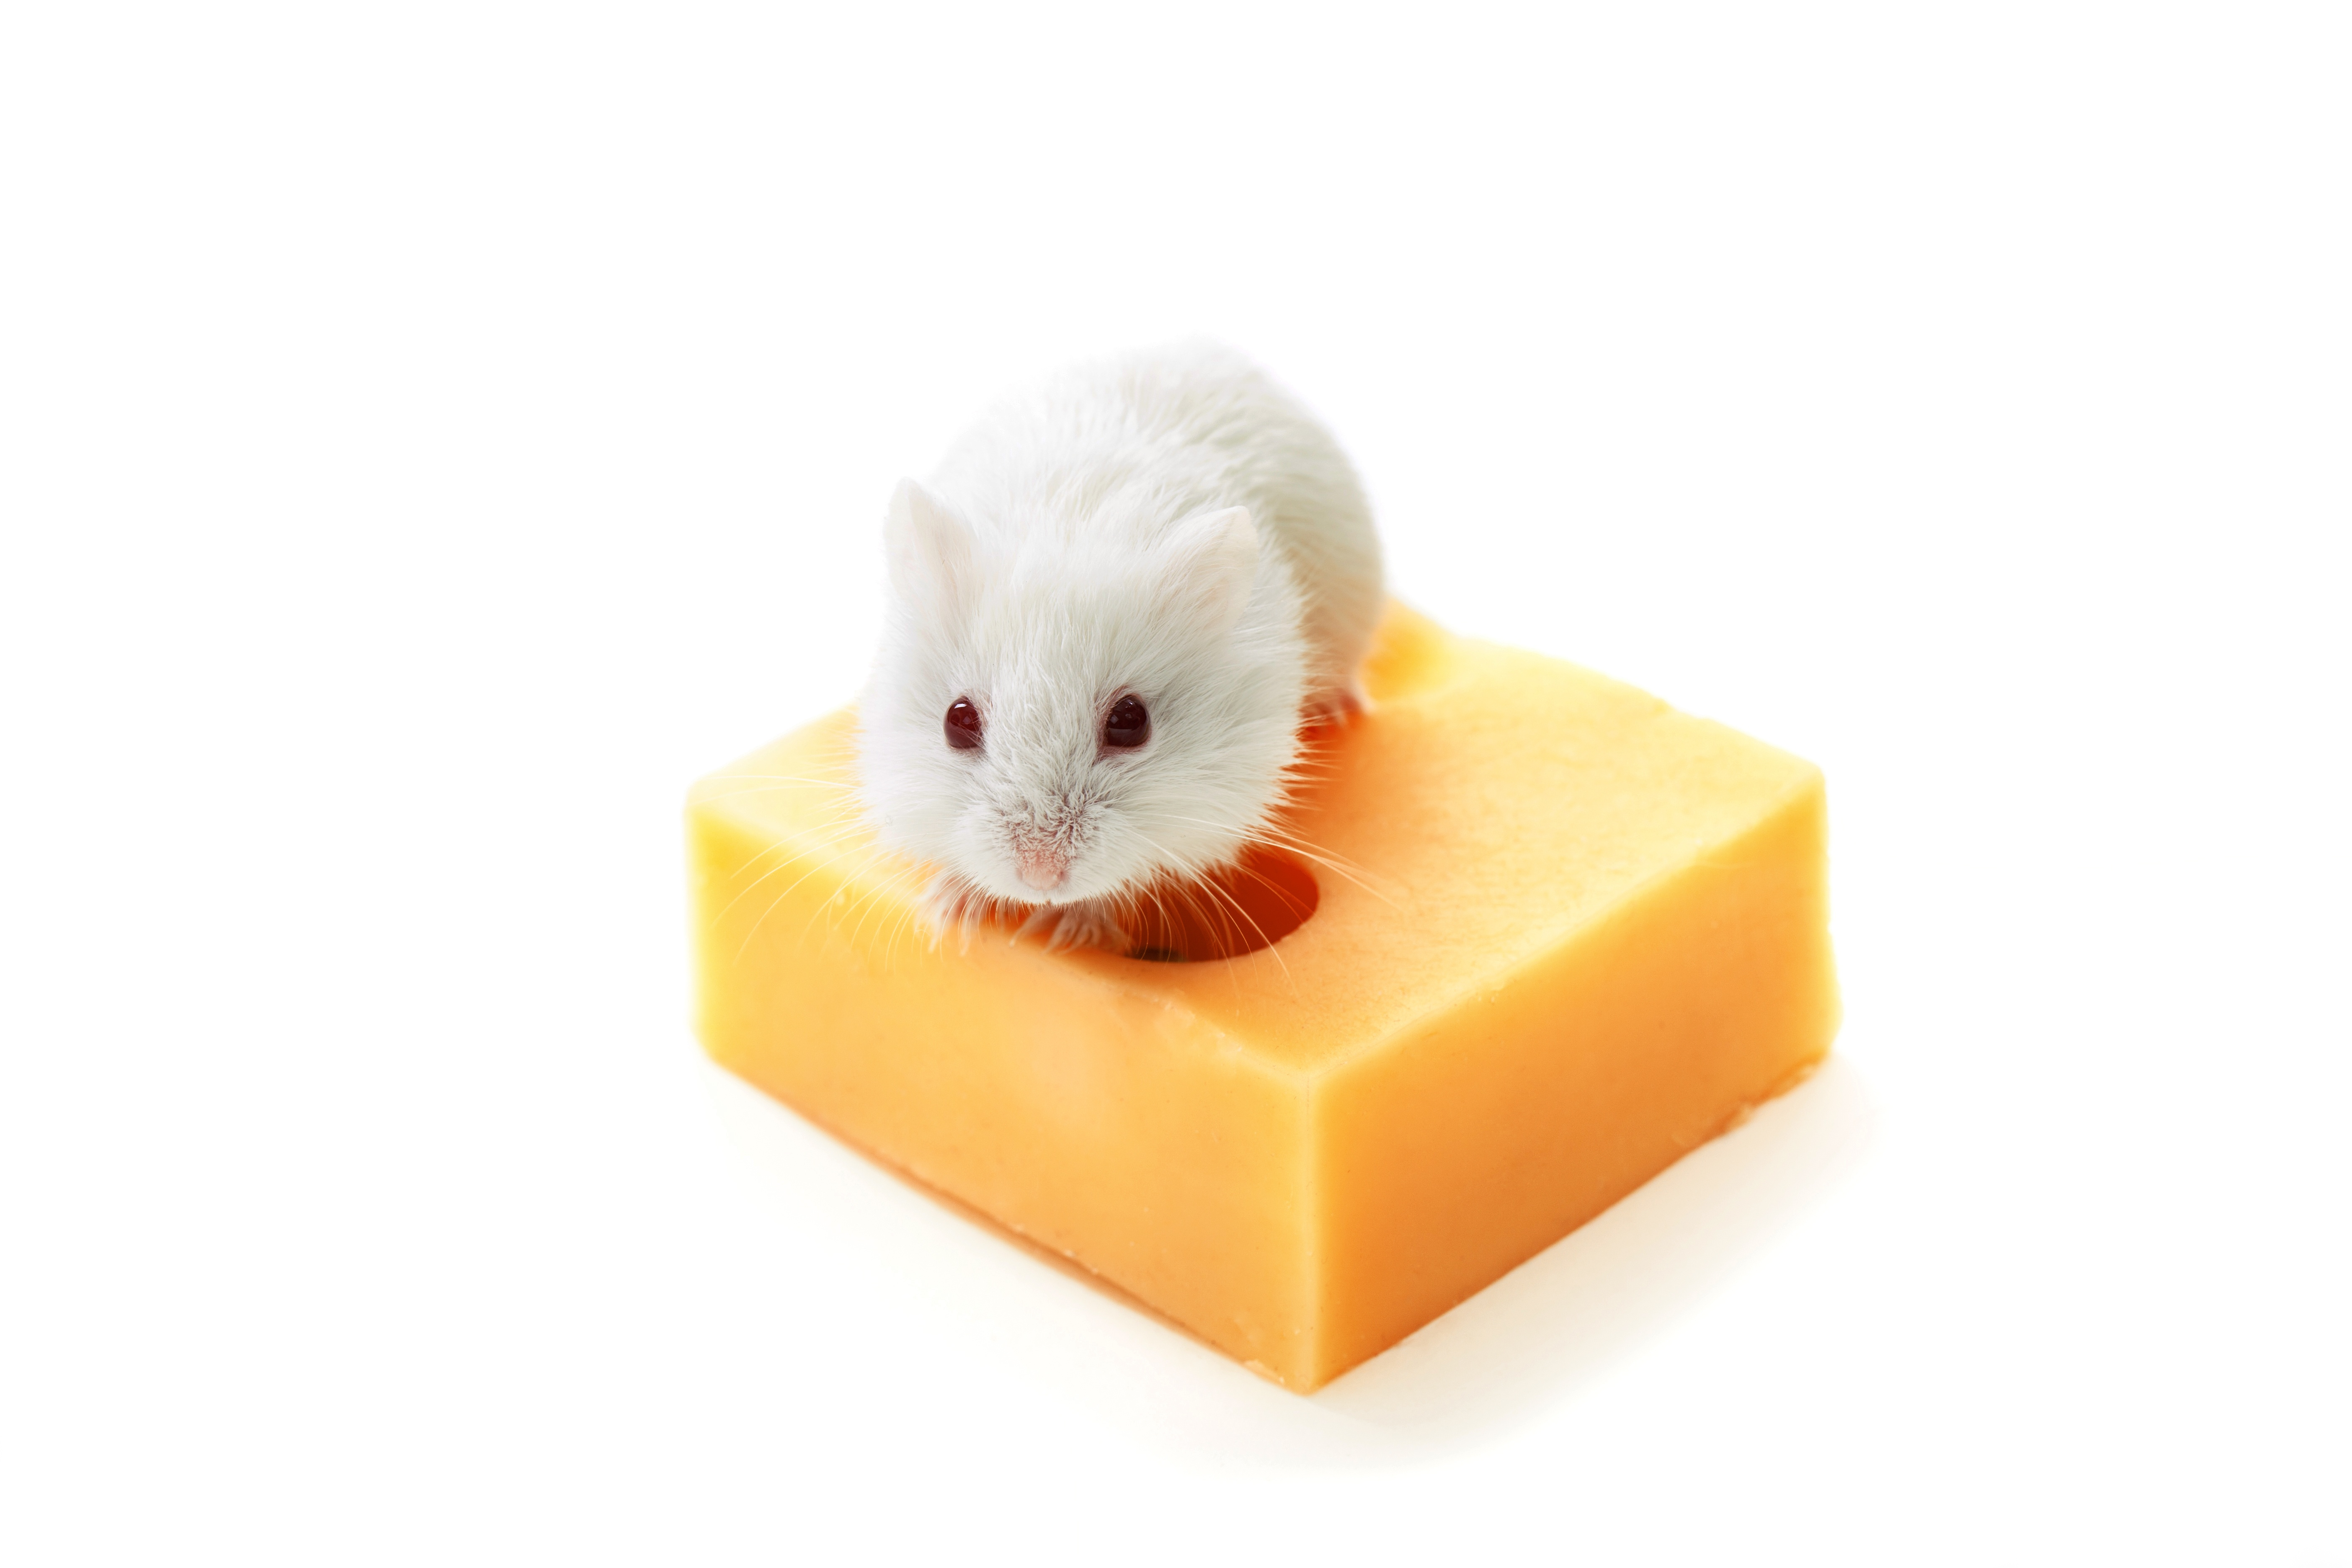 White-Mouse-And-Cheese.jpg